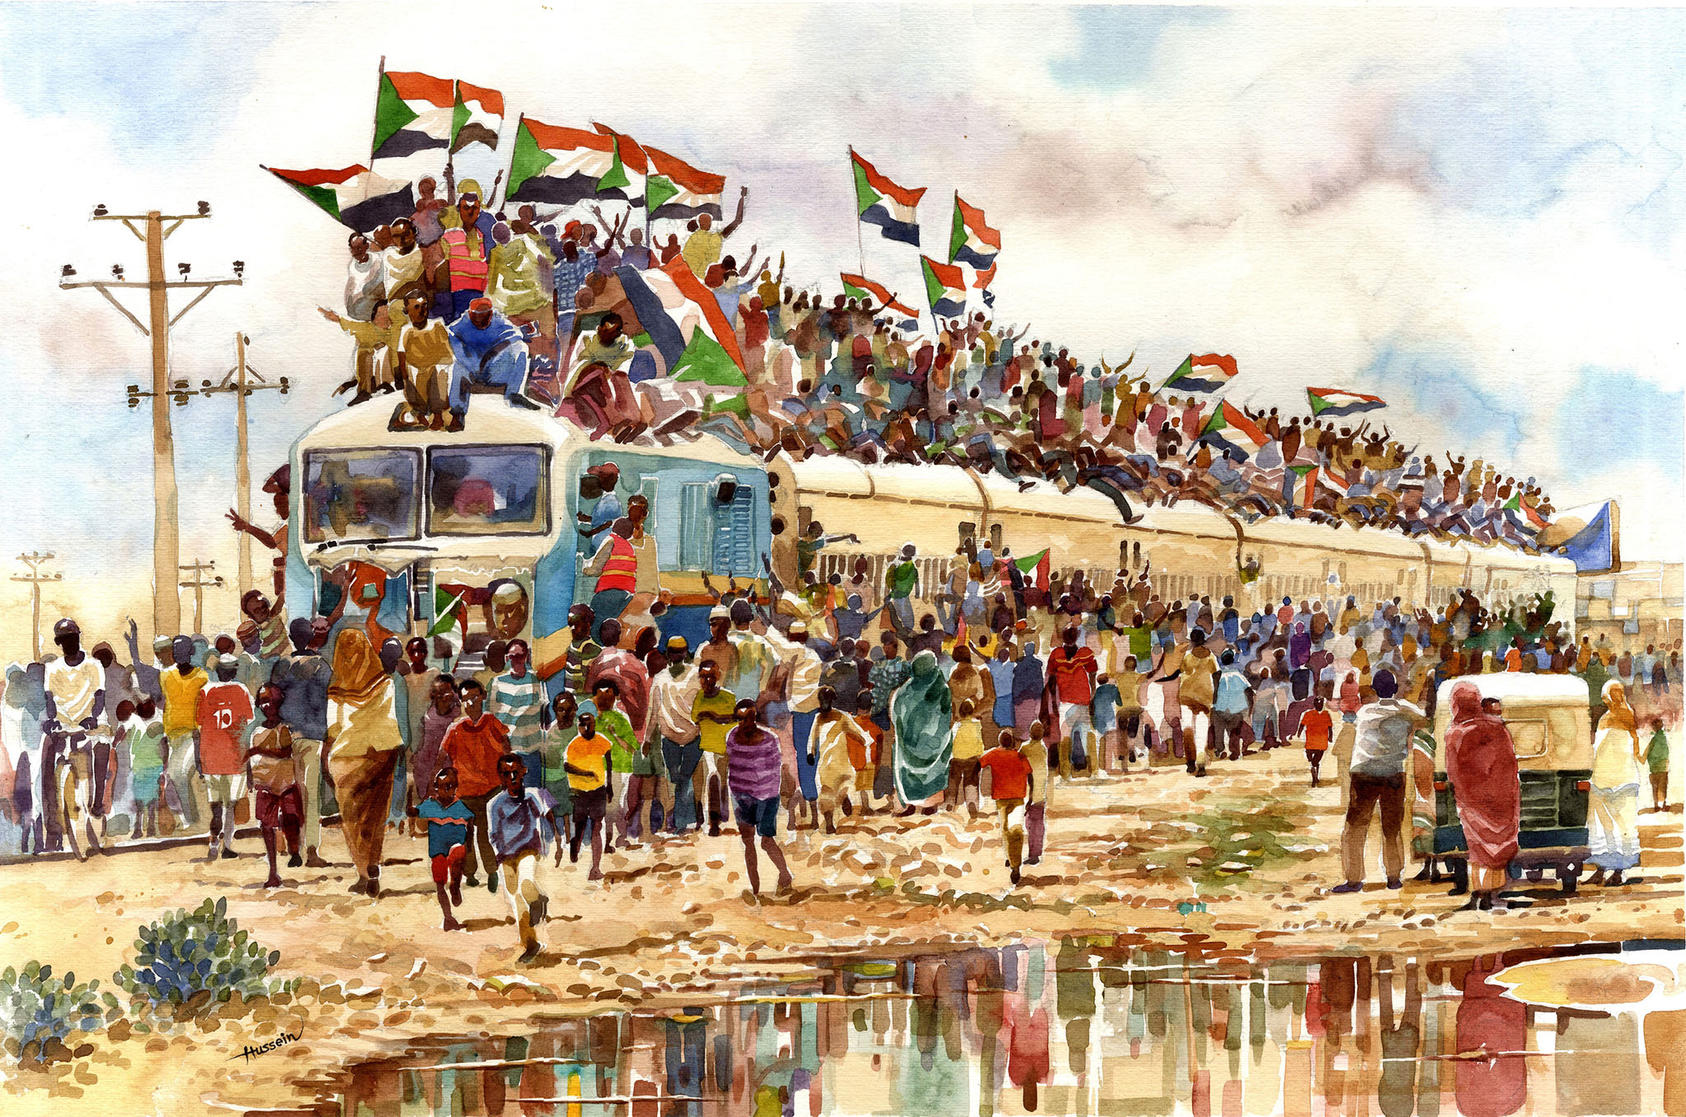 Hussein Merghani's watercolor of hundreds of people from Atbara traveling to join the sit-in at the military headquarters in Khartoum in April 2019.